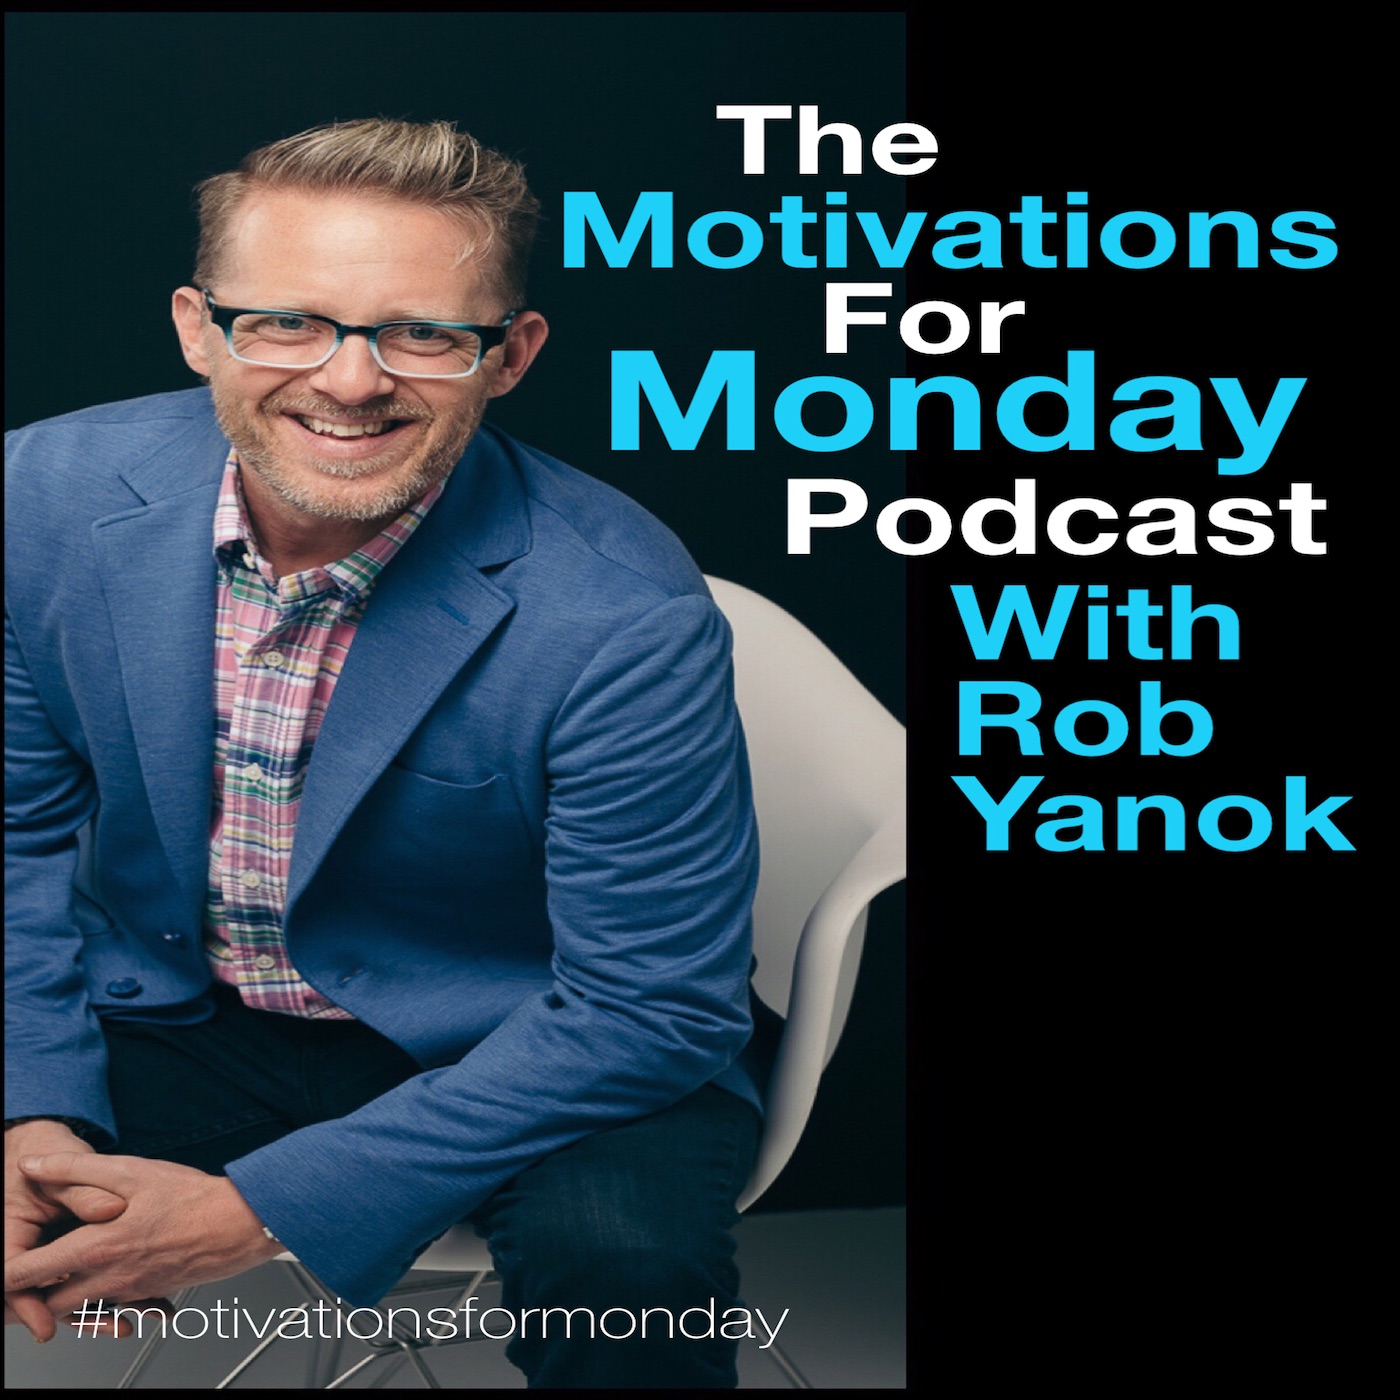 The Motivations for Monday Podcast